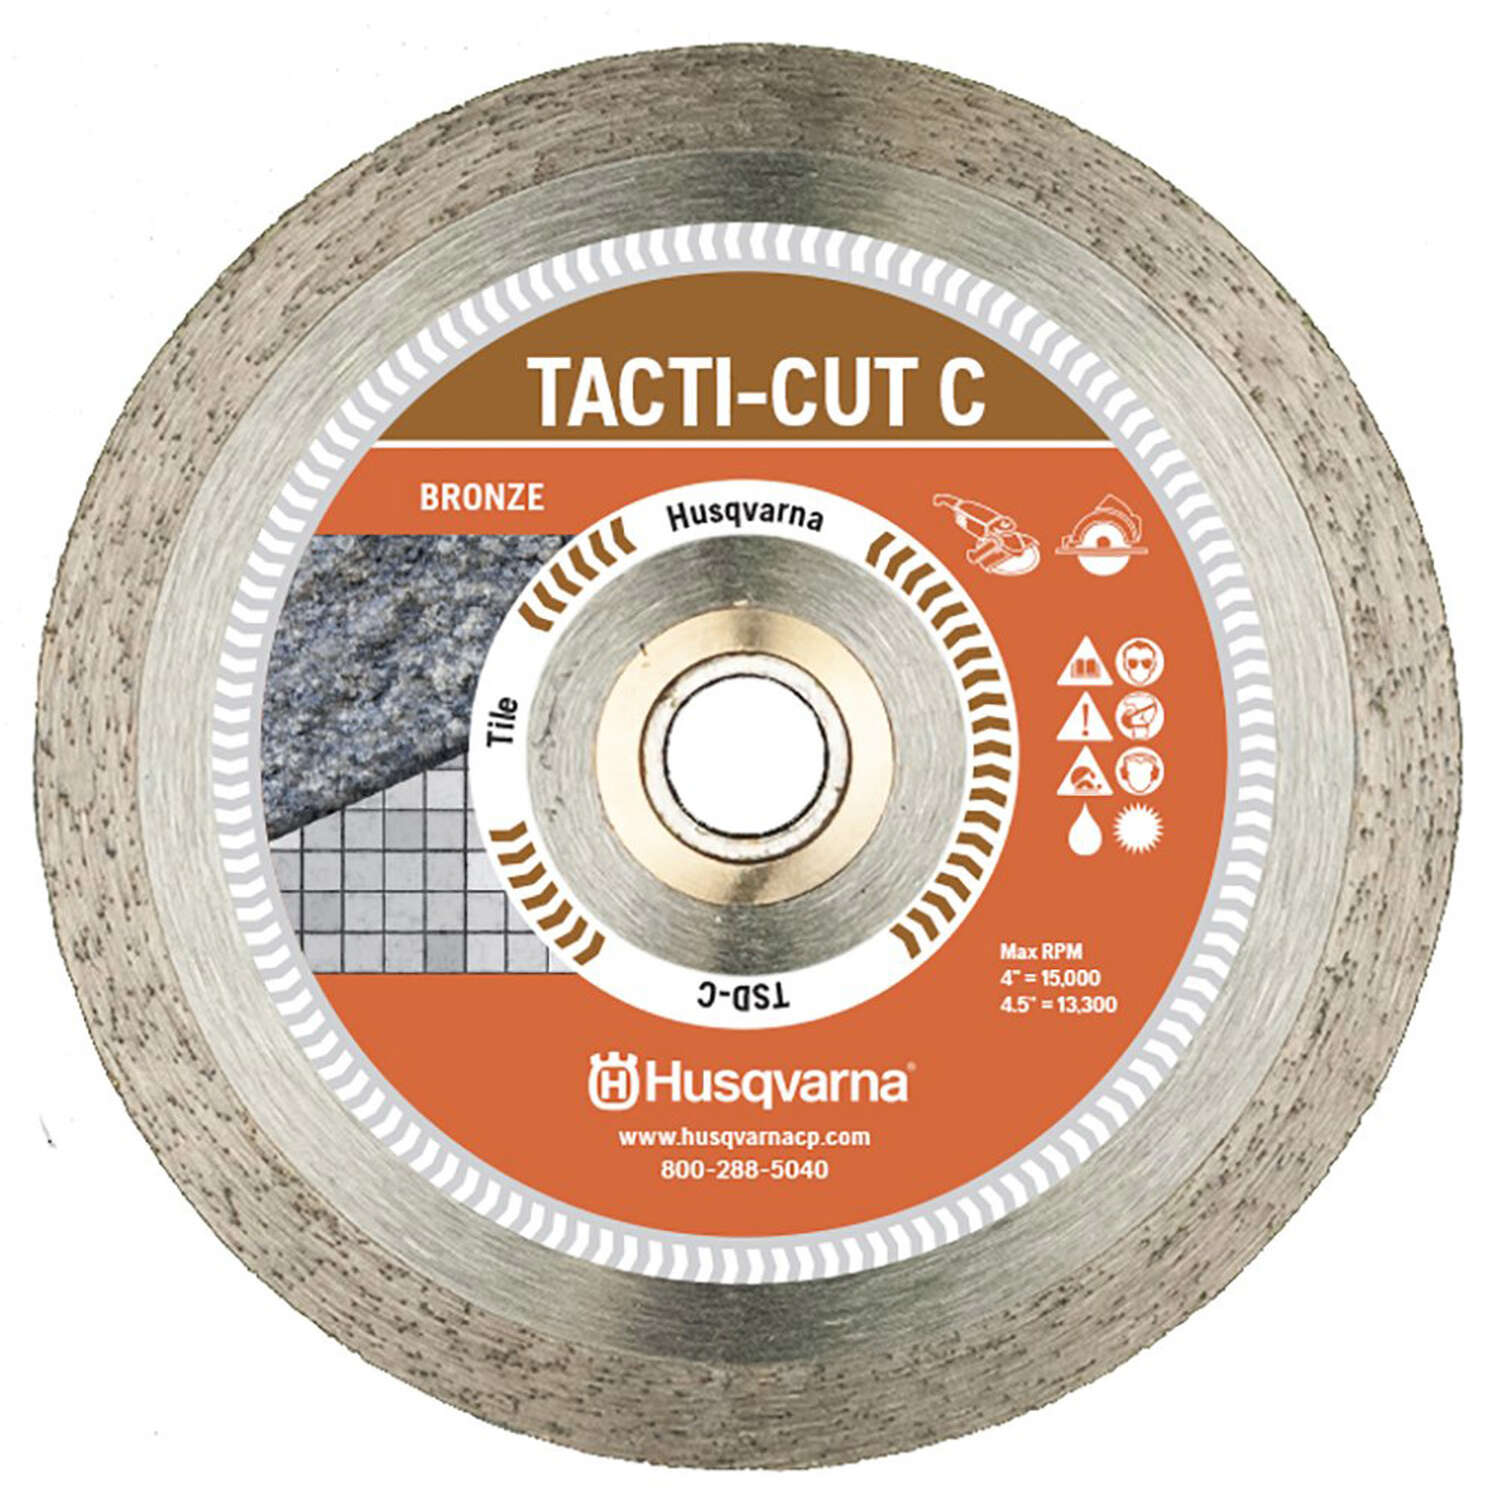 Husqvarna  Tacti-Cut Dri Disc  7 in. Dia. x 5/8 in.  Continuous Rim Diamond Saw Blade  1 pk